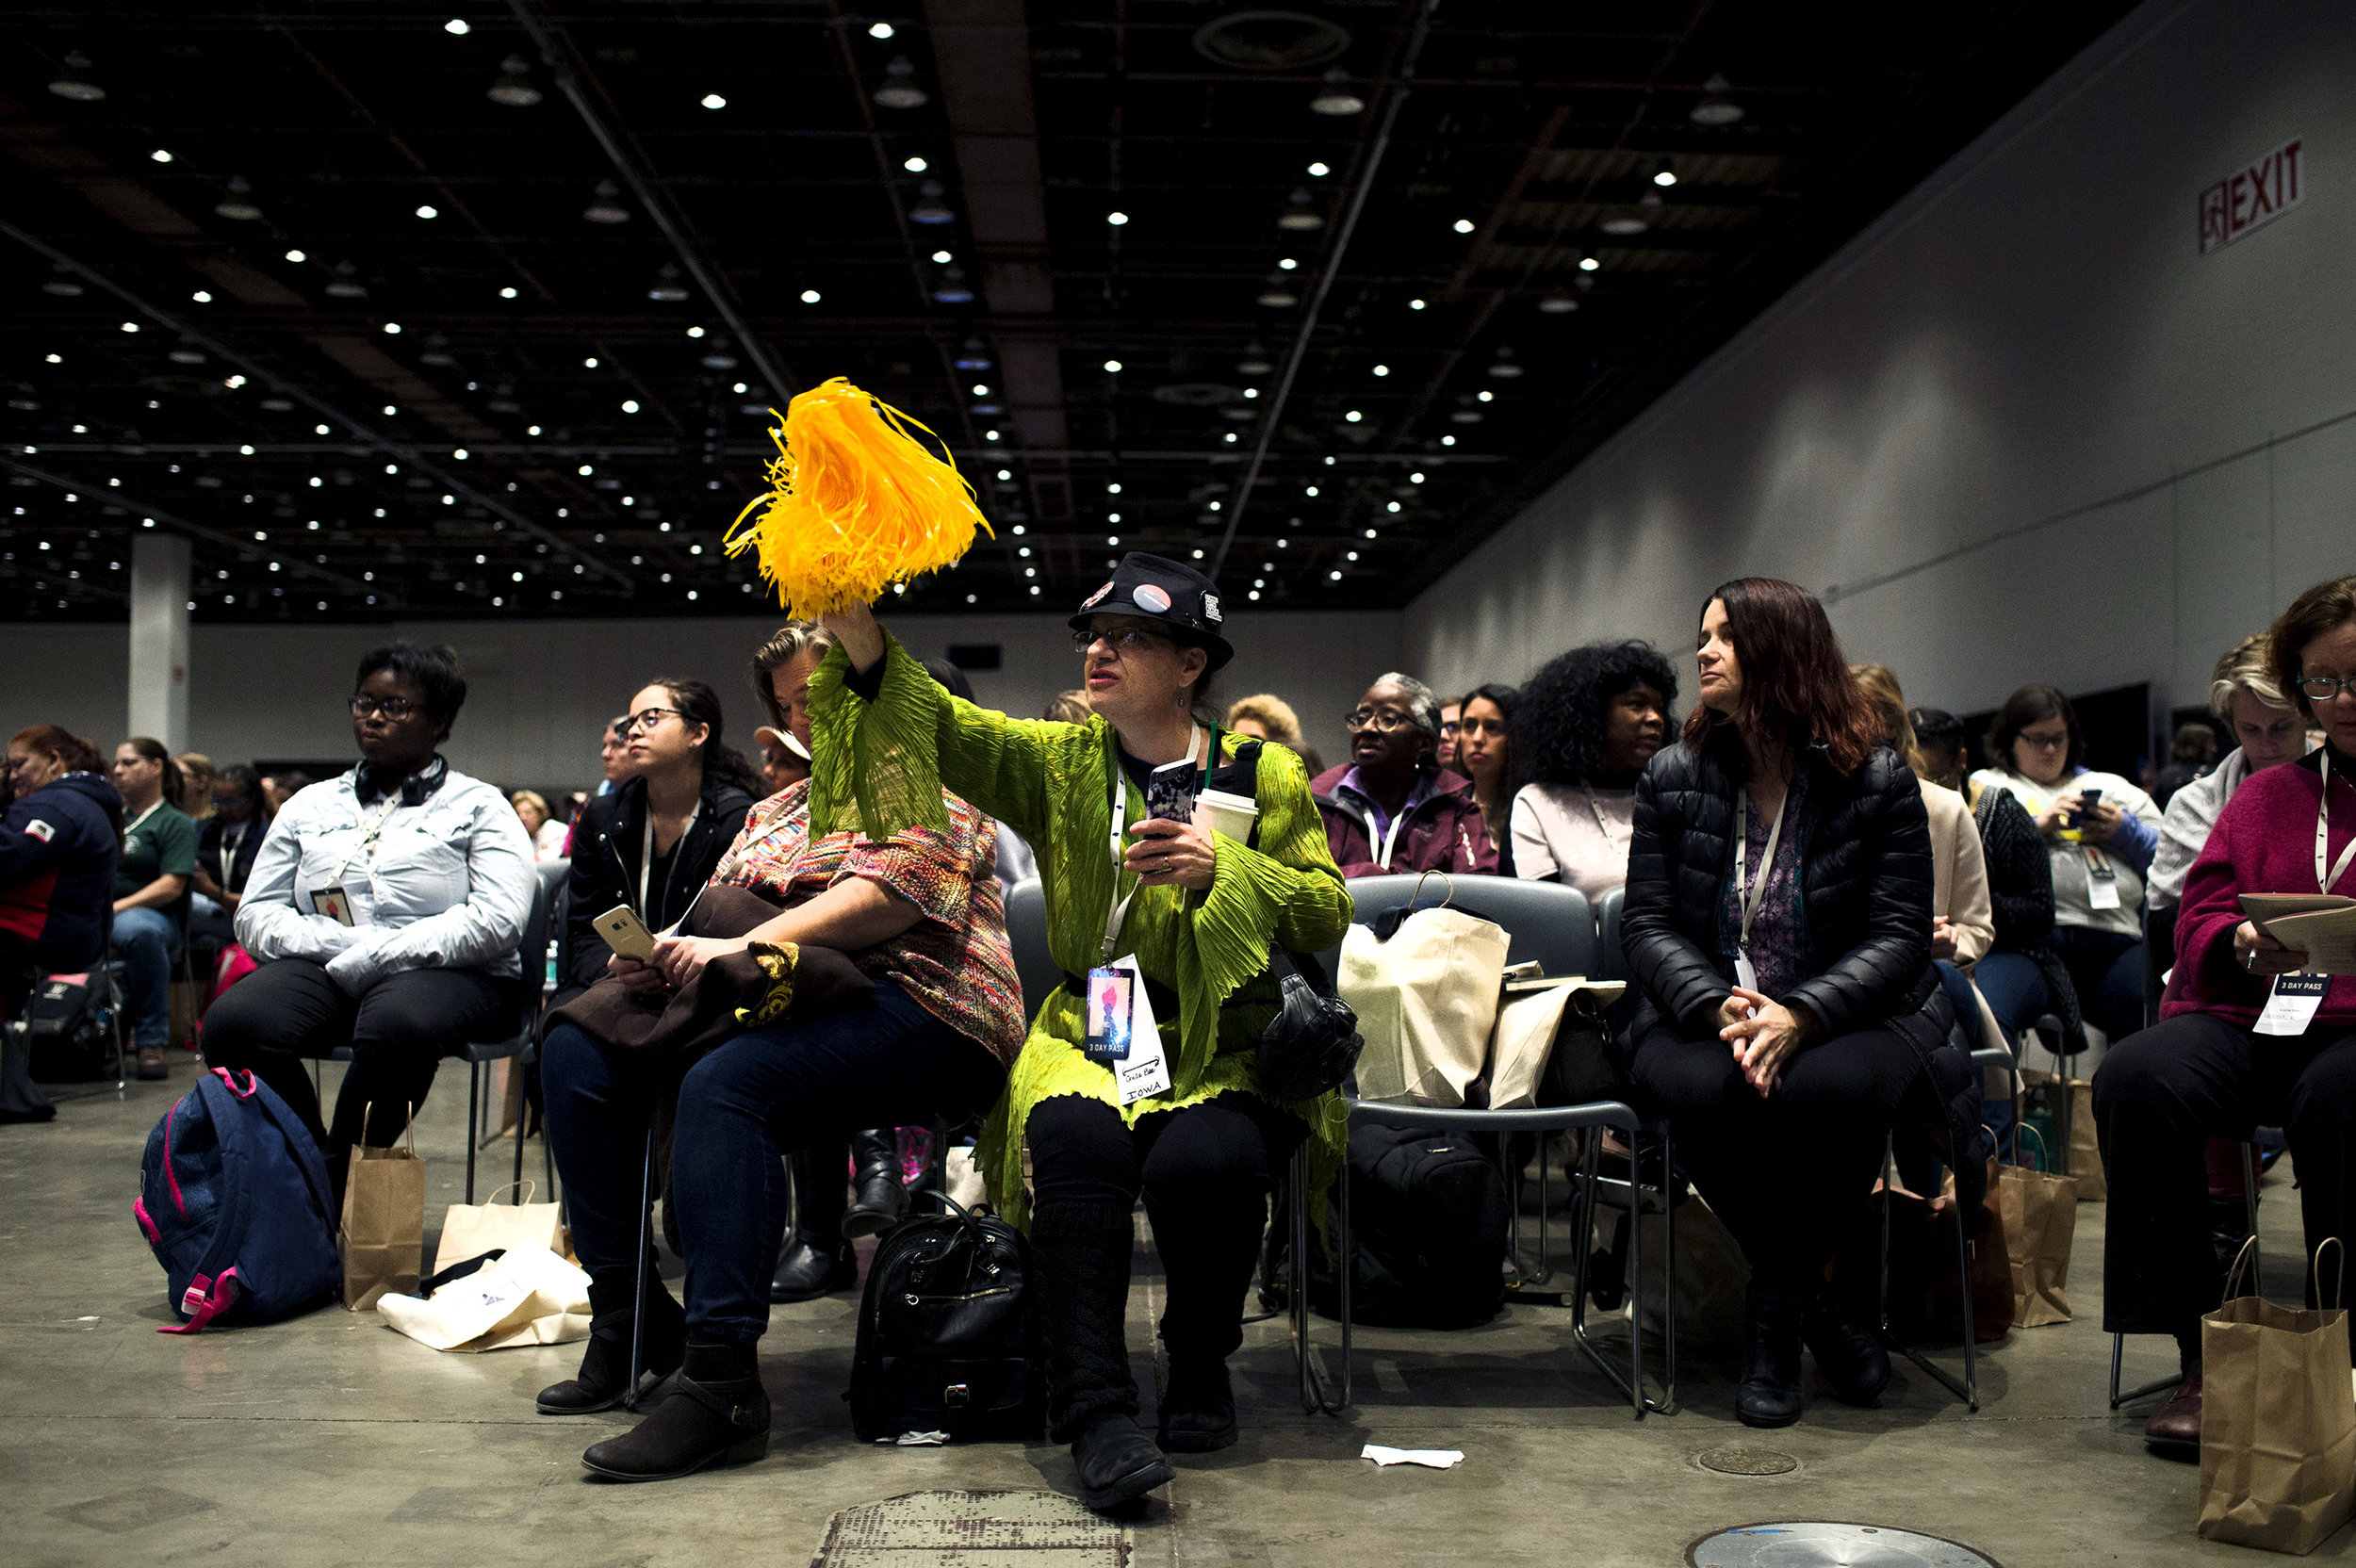 WomensConvention_Woolf_07.JPG